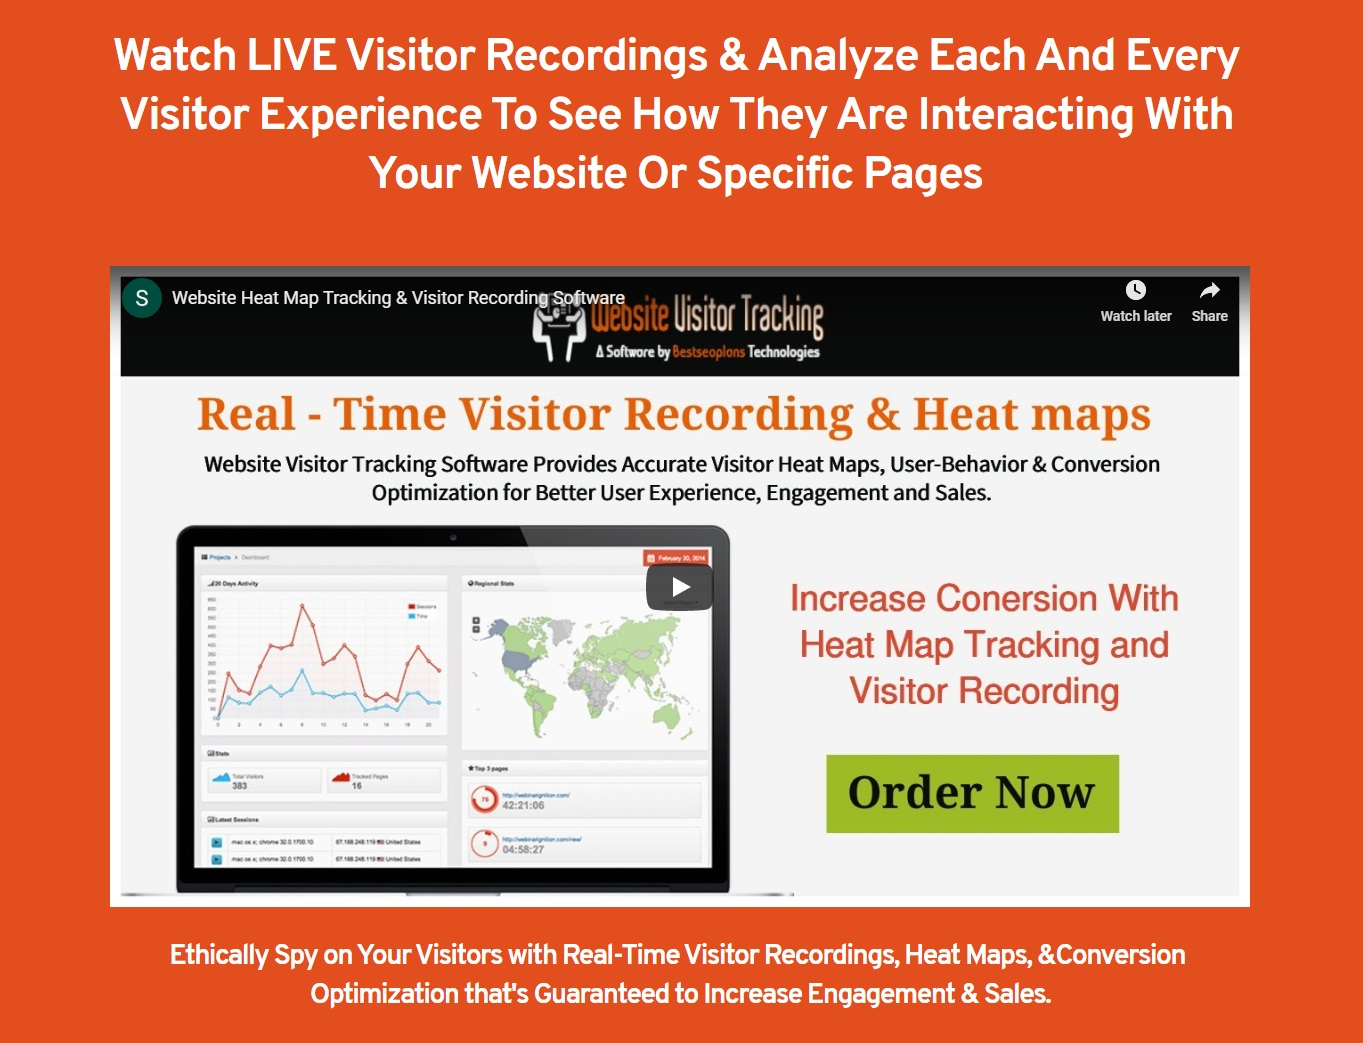 Setup Website Heatmap Tracking & Visitor Recording Software in Your Website